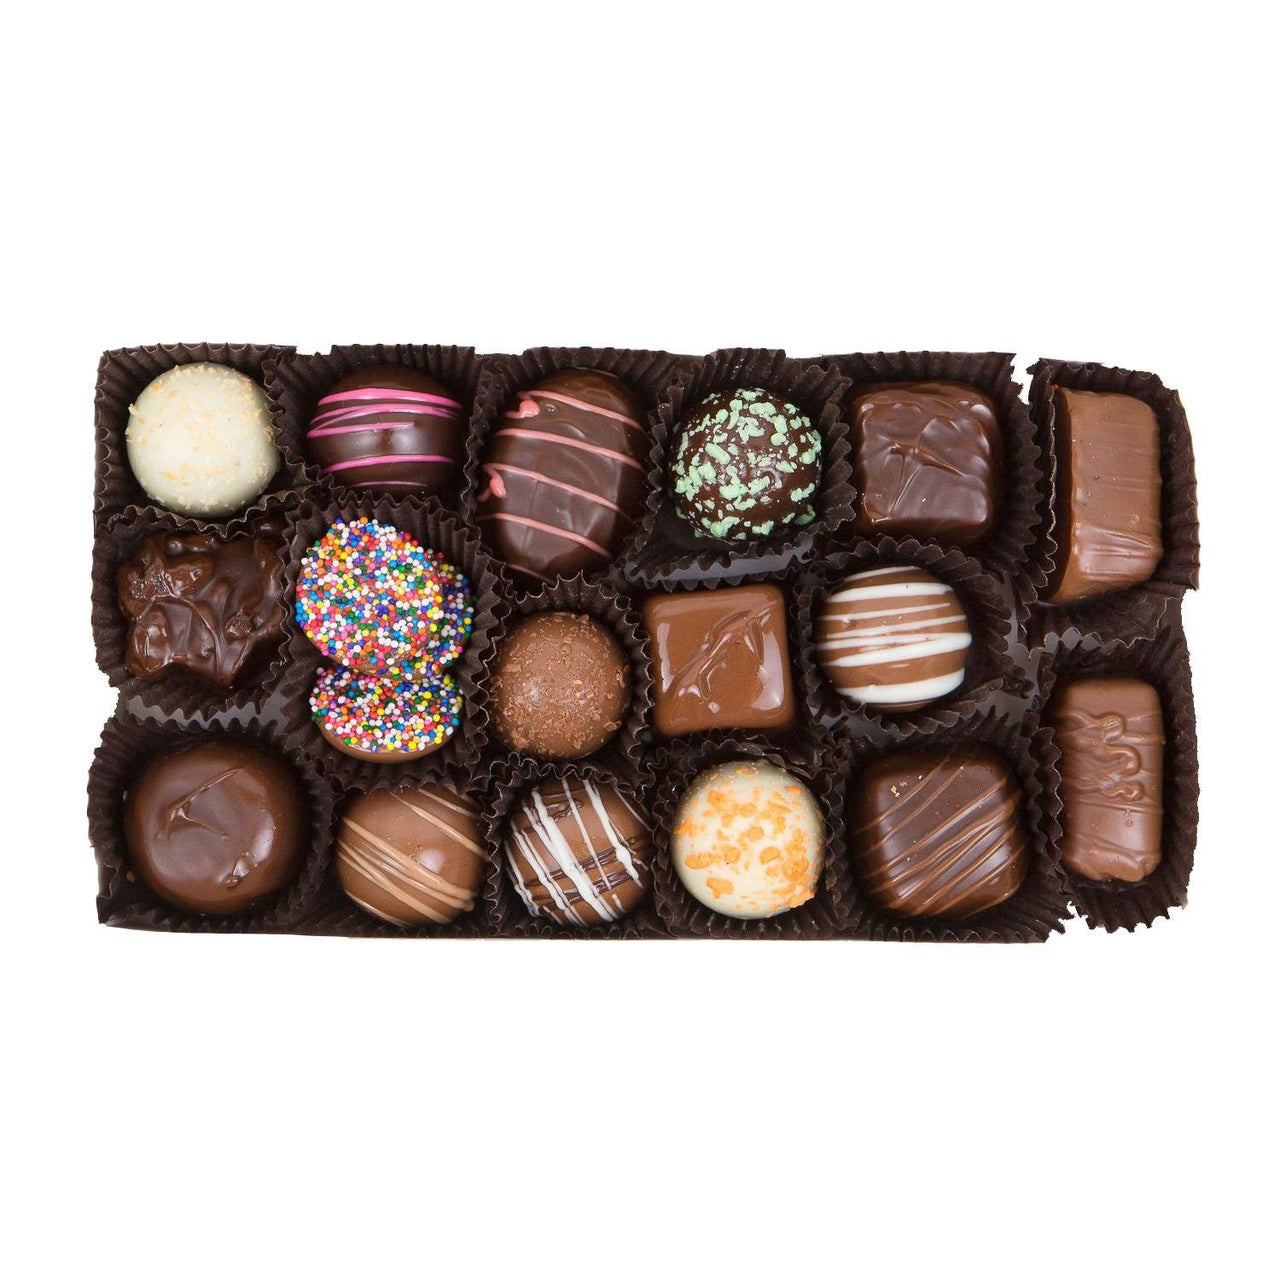 Gifts for College Students - Assorted Chocolate Gift Box - Jackie's Chocolate (1487129411619)